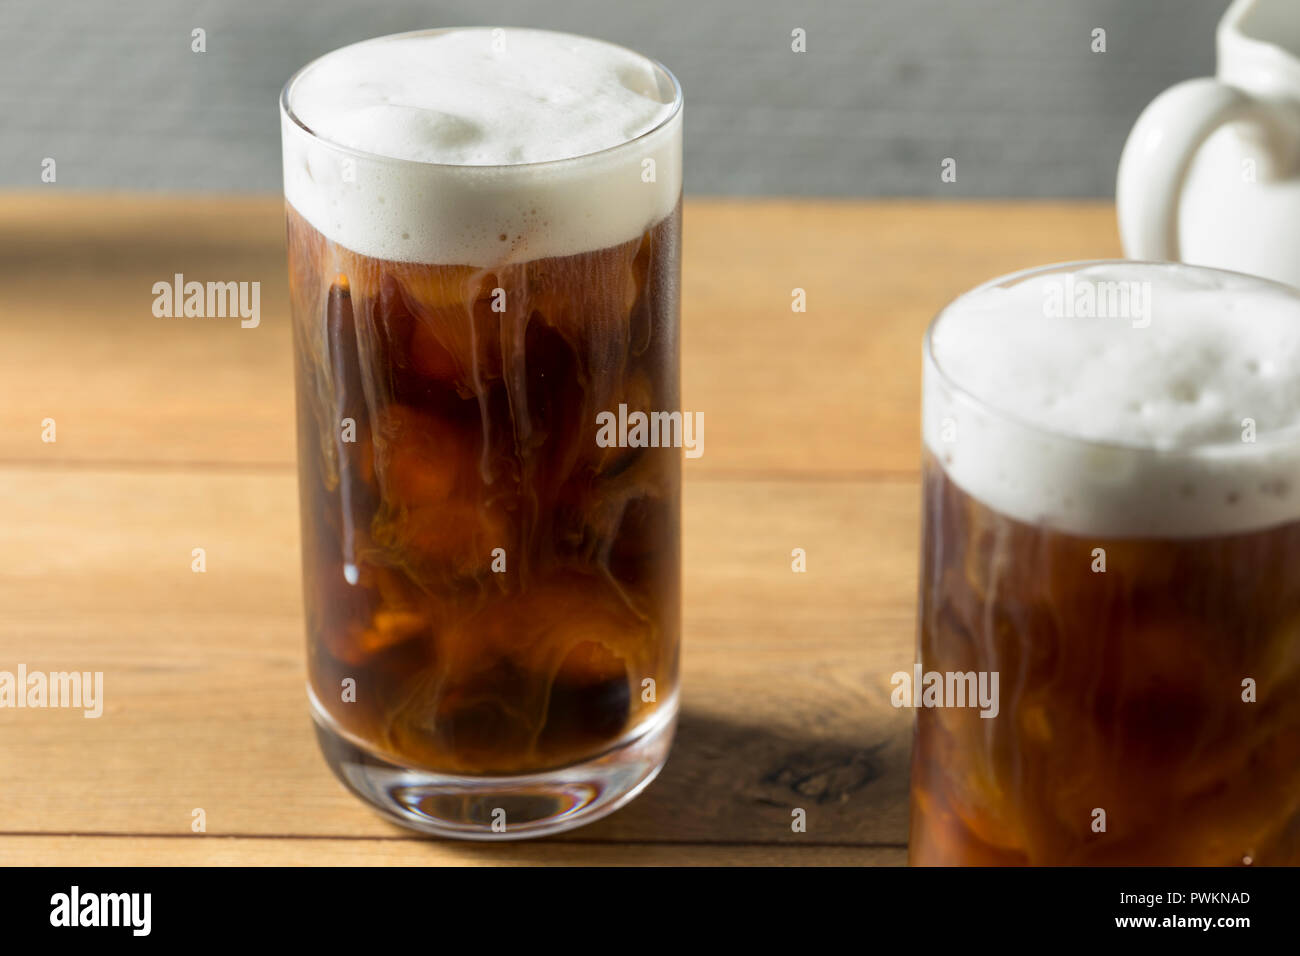 Homemade Cold Brew Coffee with Cold Foam - Stock Image